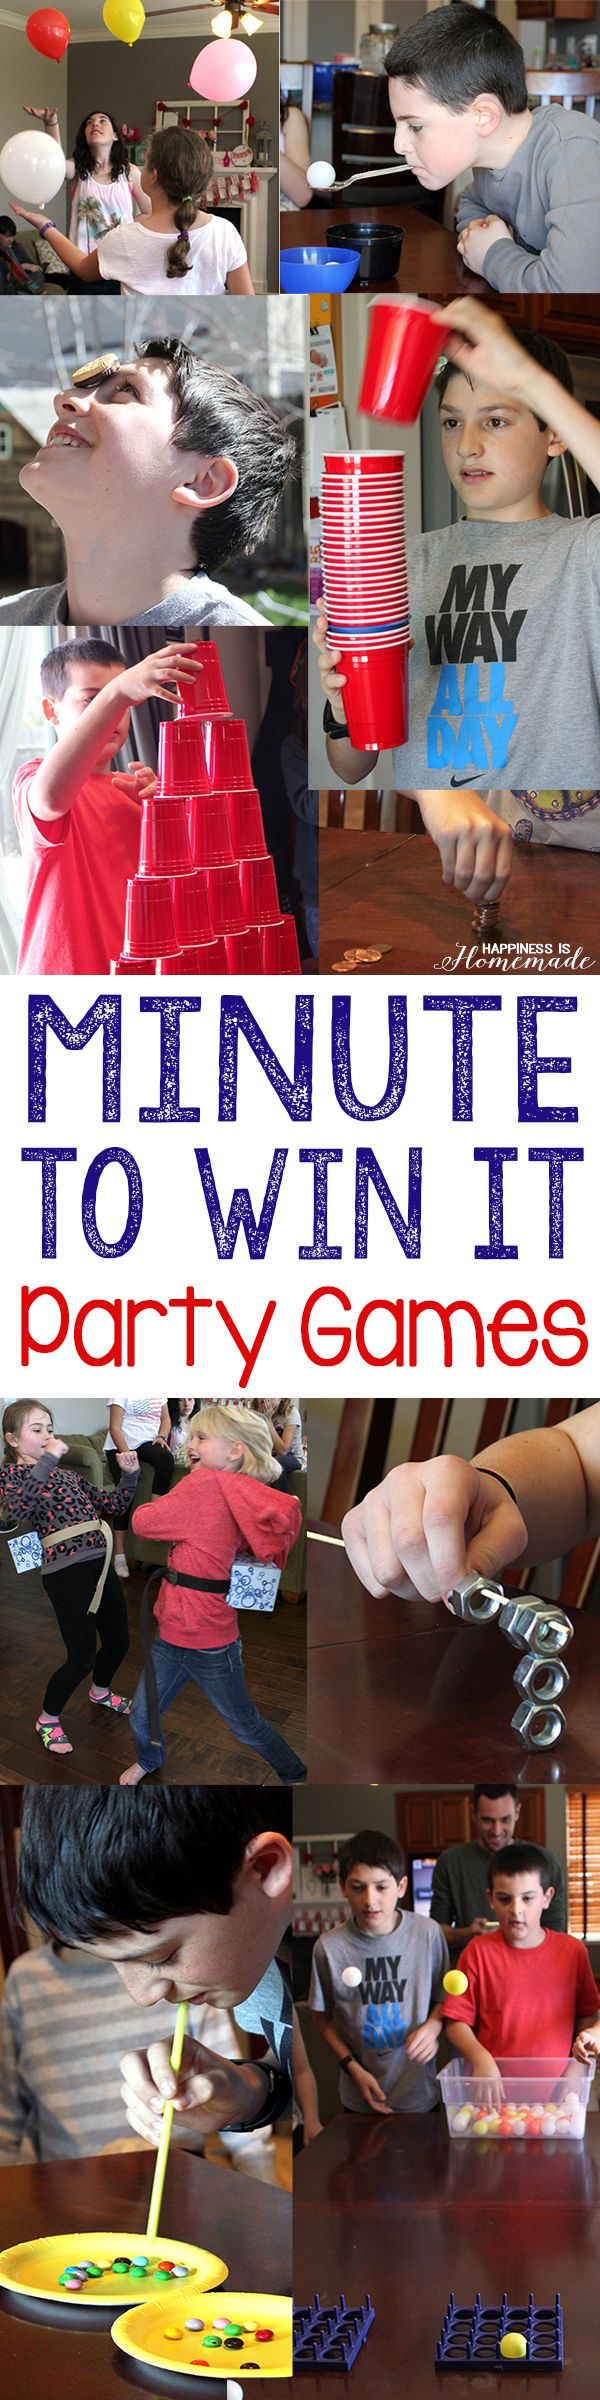 Minute to Win It Party Games by Happiness is Homemade and other great party ideas and party decor!